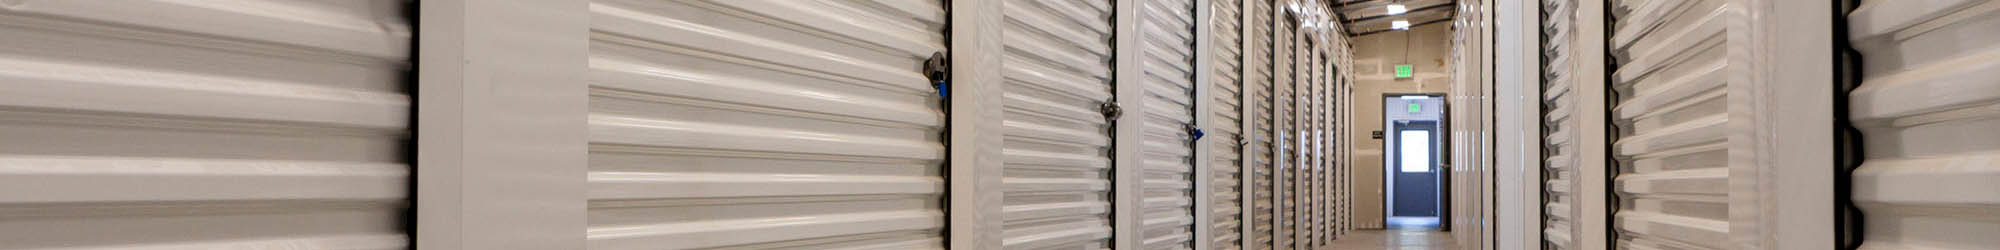 Storage units in Tampa, FL